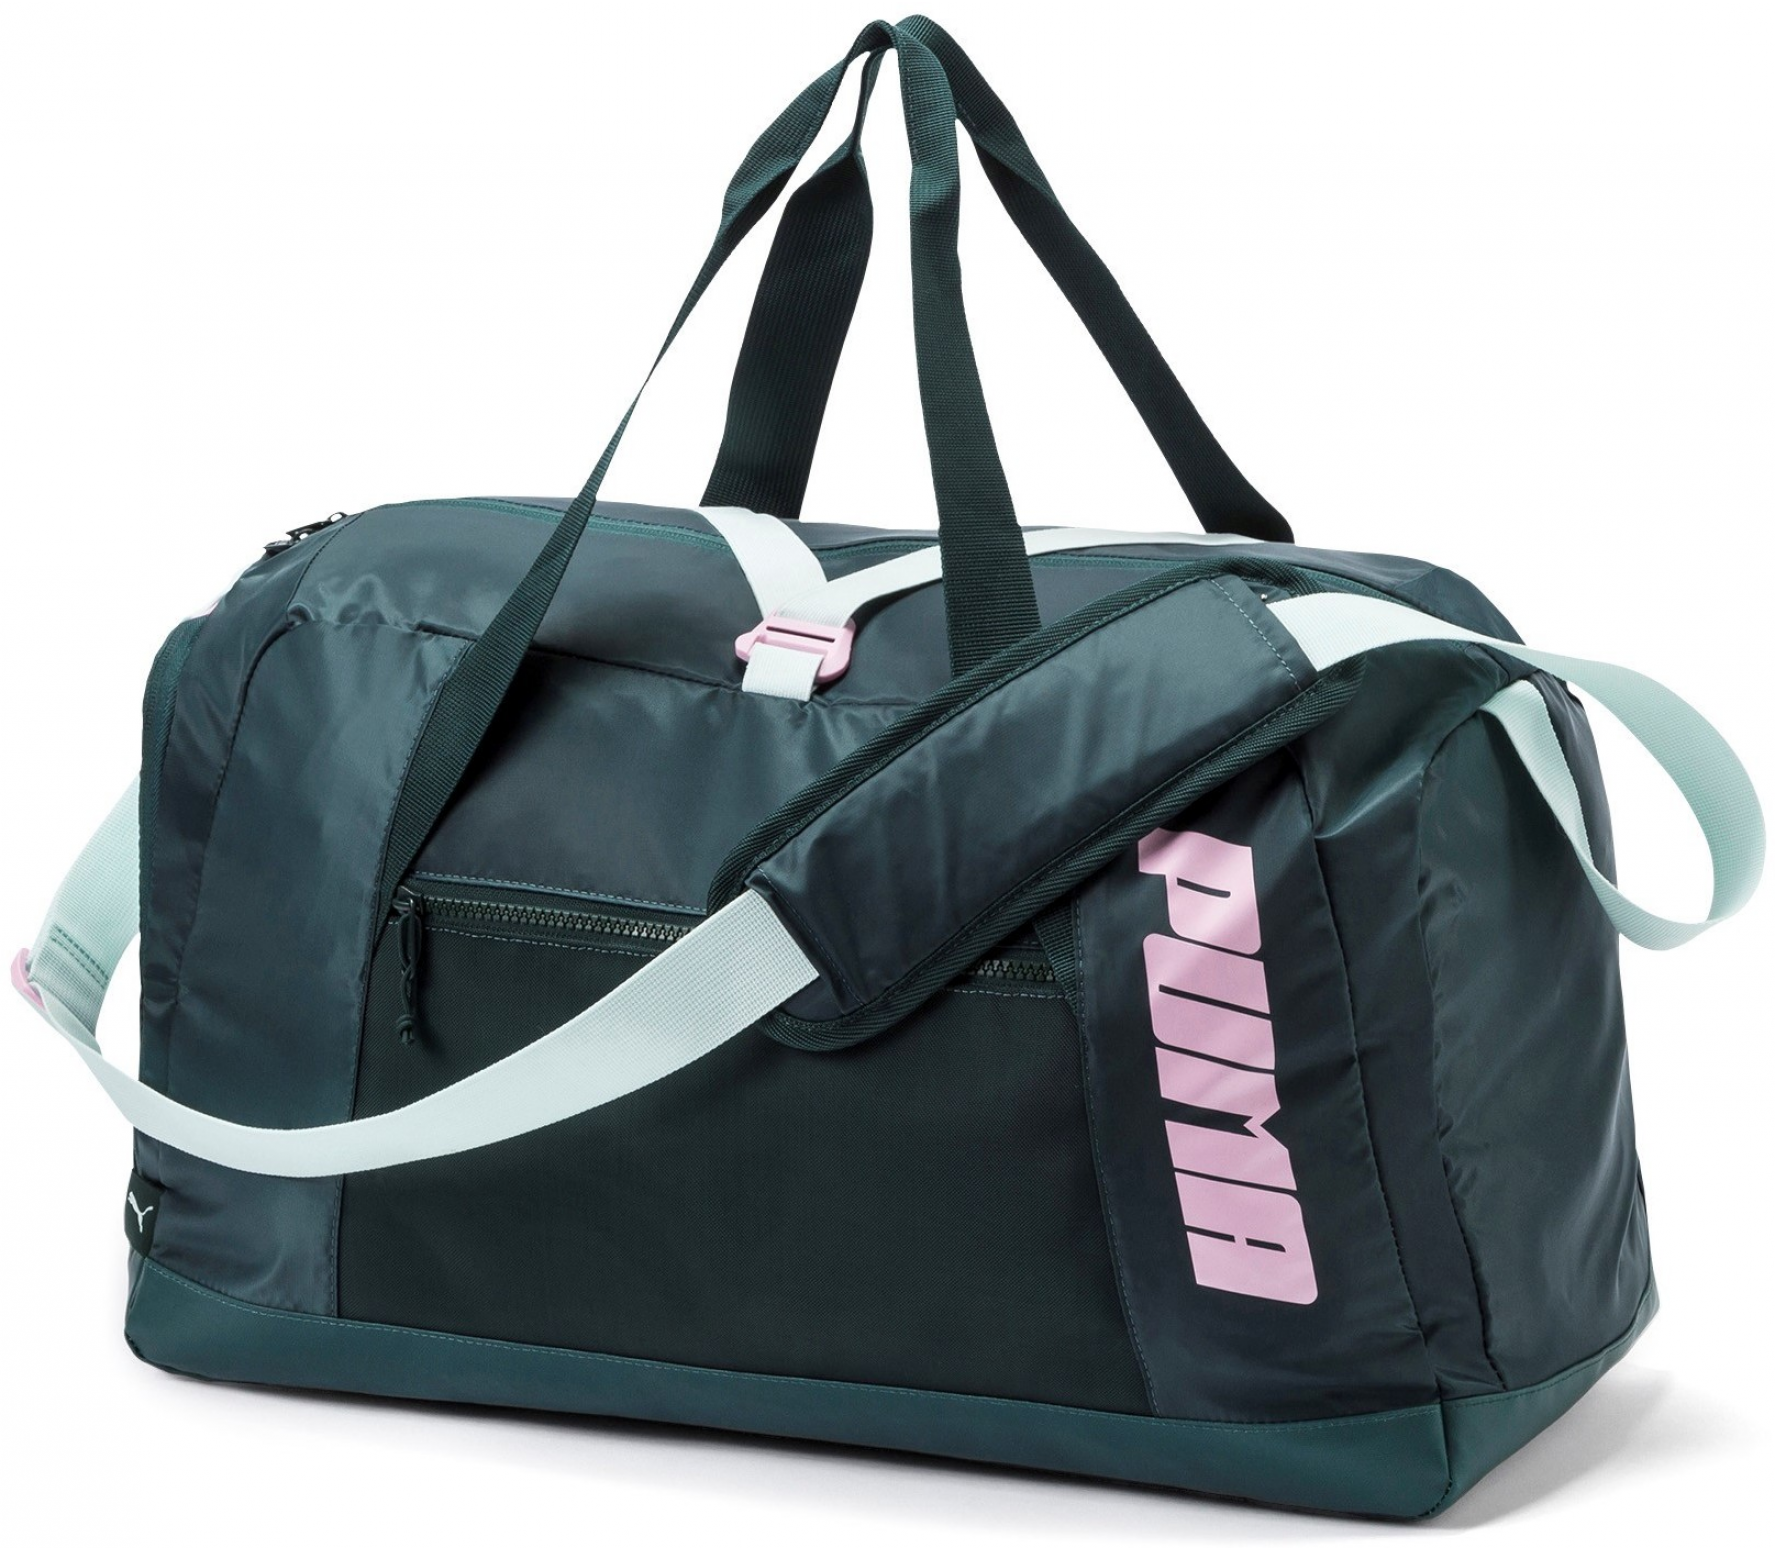 650da07deea Puma - AT duffle bag women's training bag (green) - buy it at the ...